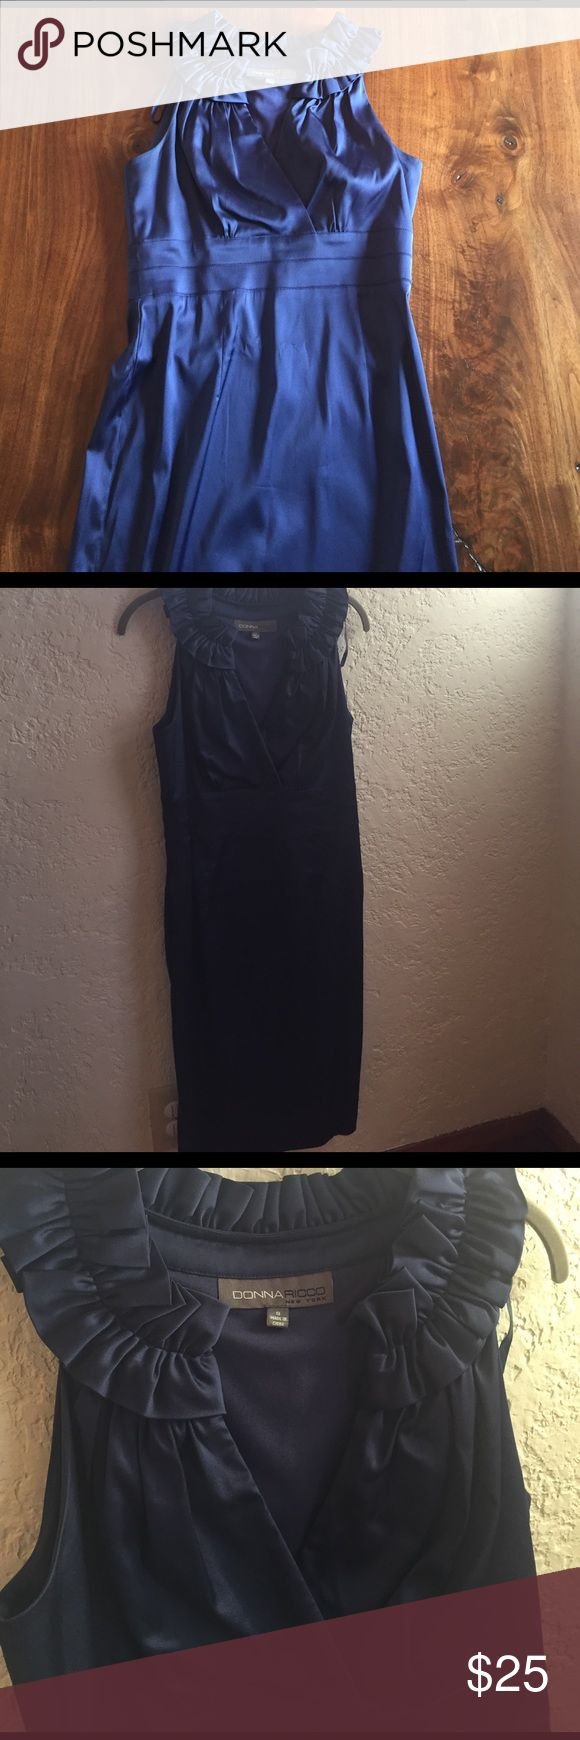 "Donna Ricco Formal Dress Worn once to a wedding. Like new. Beautiful blue, interesting neck design. 25"" drop from waist Donna Ricco Dresses"